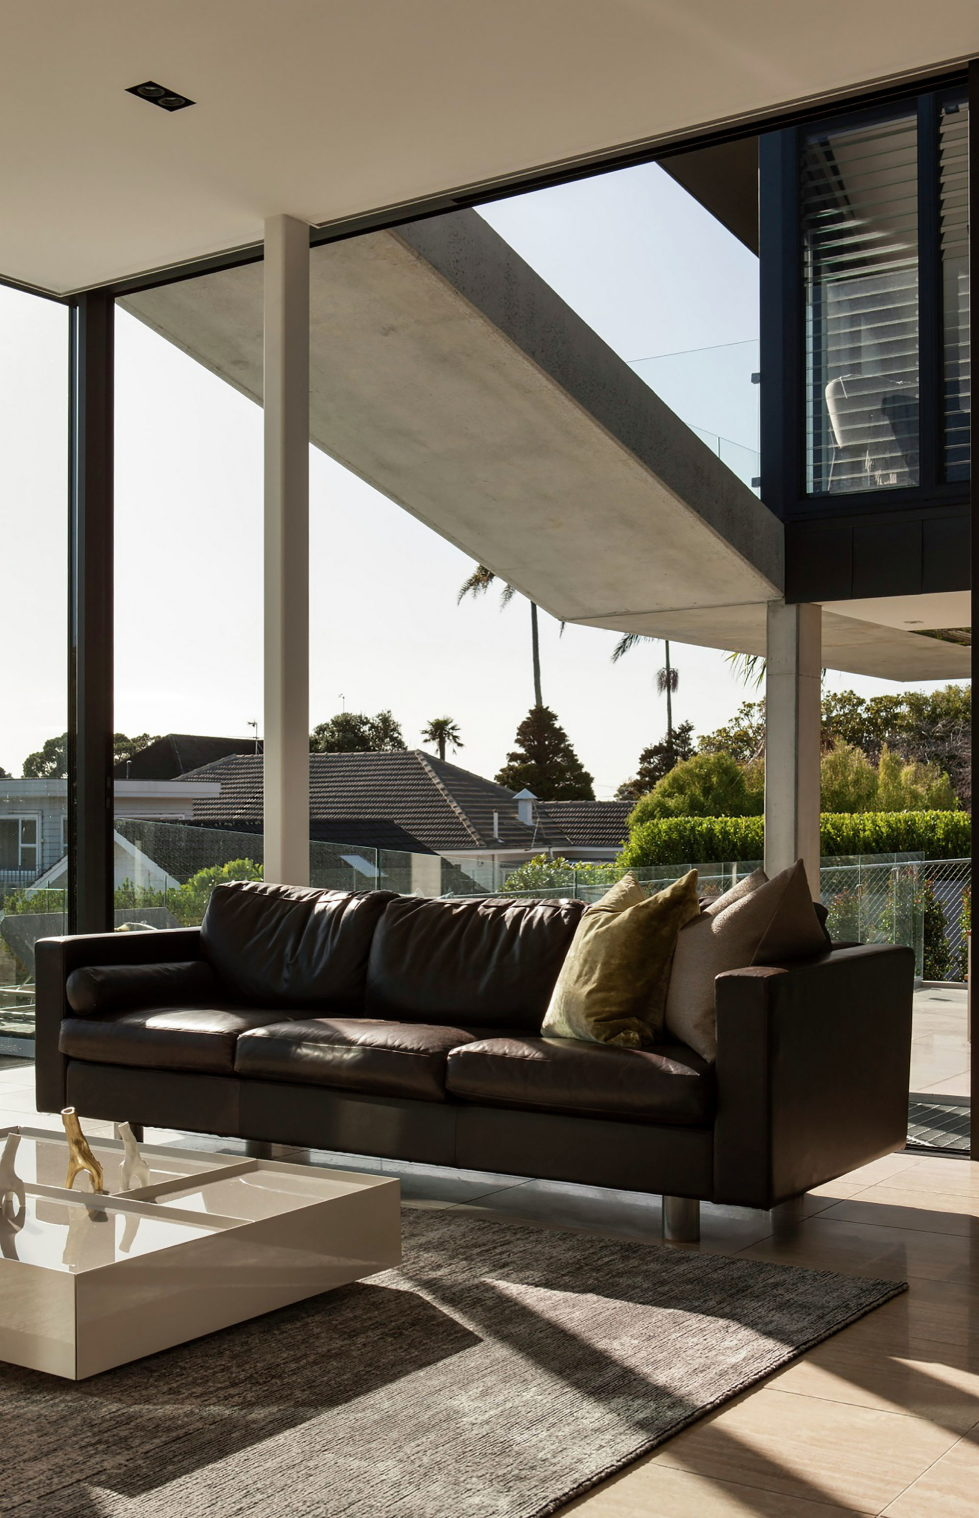 out-of-town-villa-in-new-zealand-upon-the-project-of-daniel-marshall-architects-studio-7